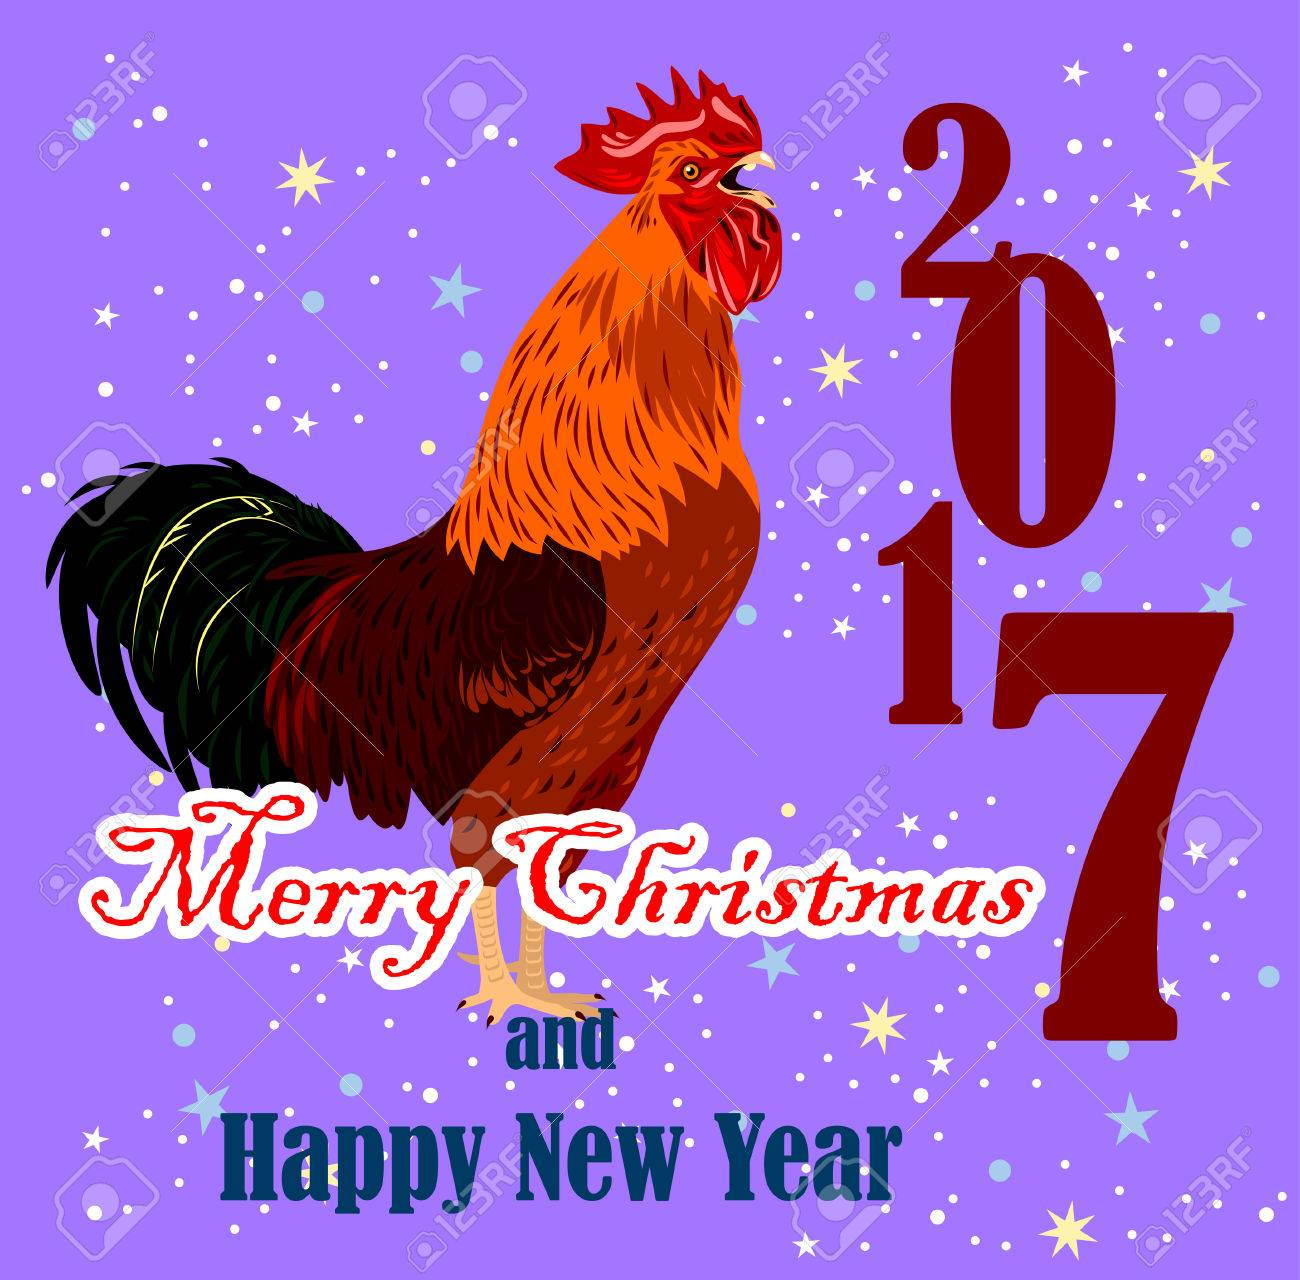 Image Of Elegant Beautiful Rooster Symbol In 2017 By The Chinese